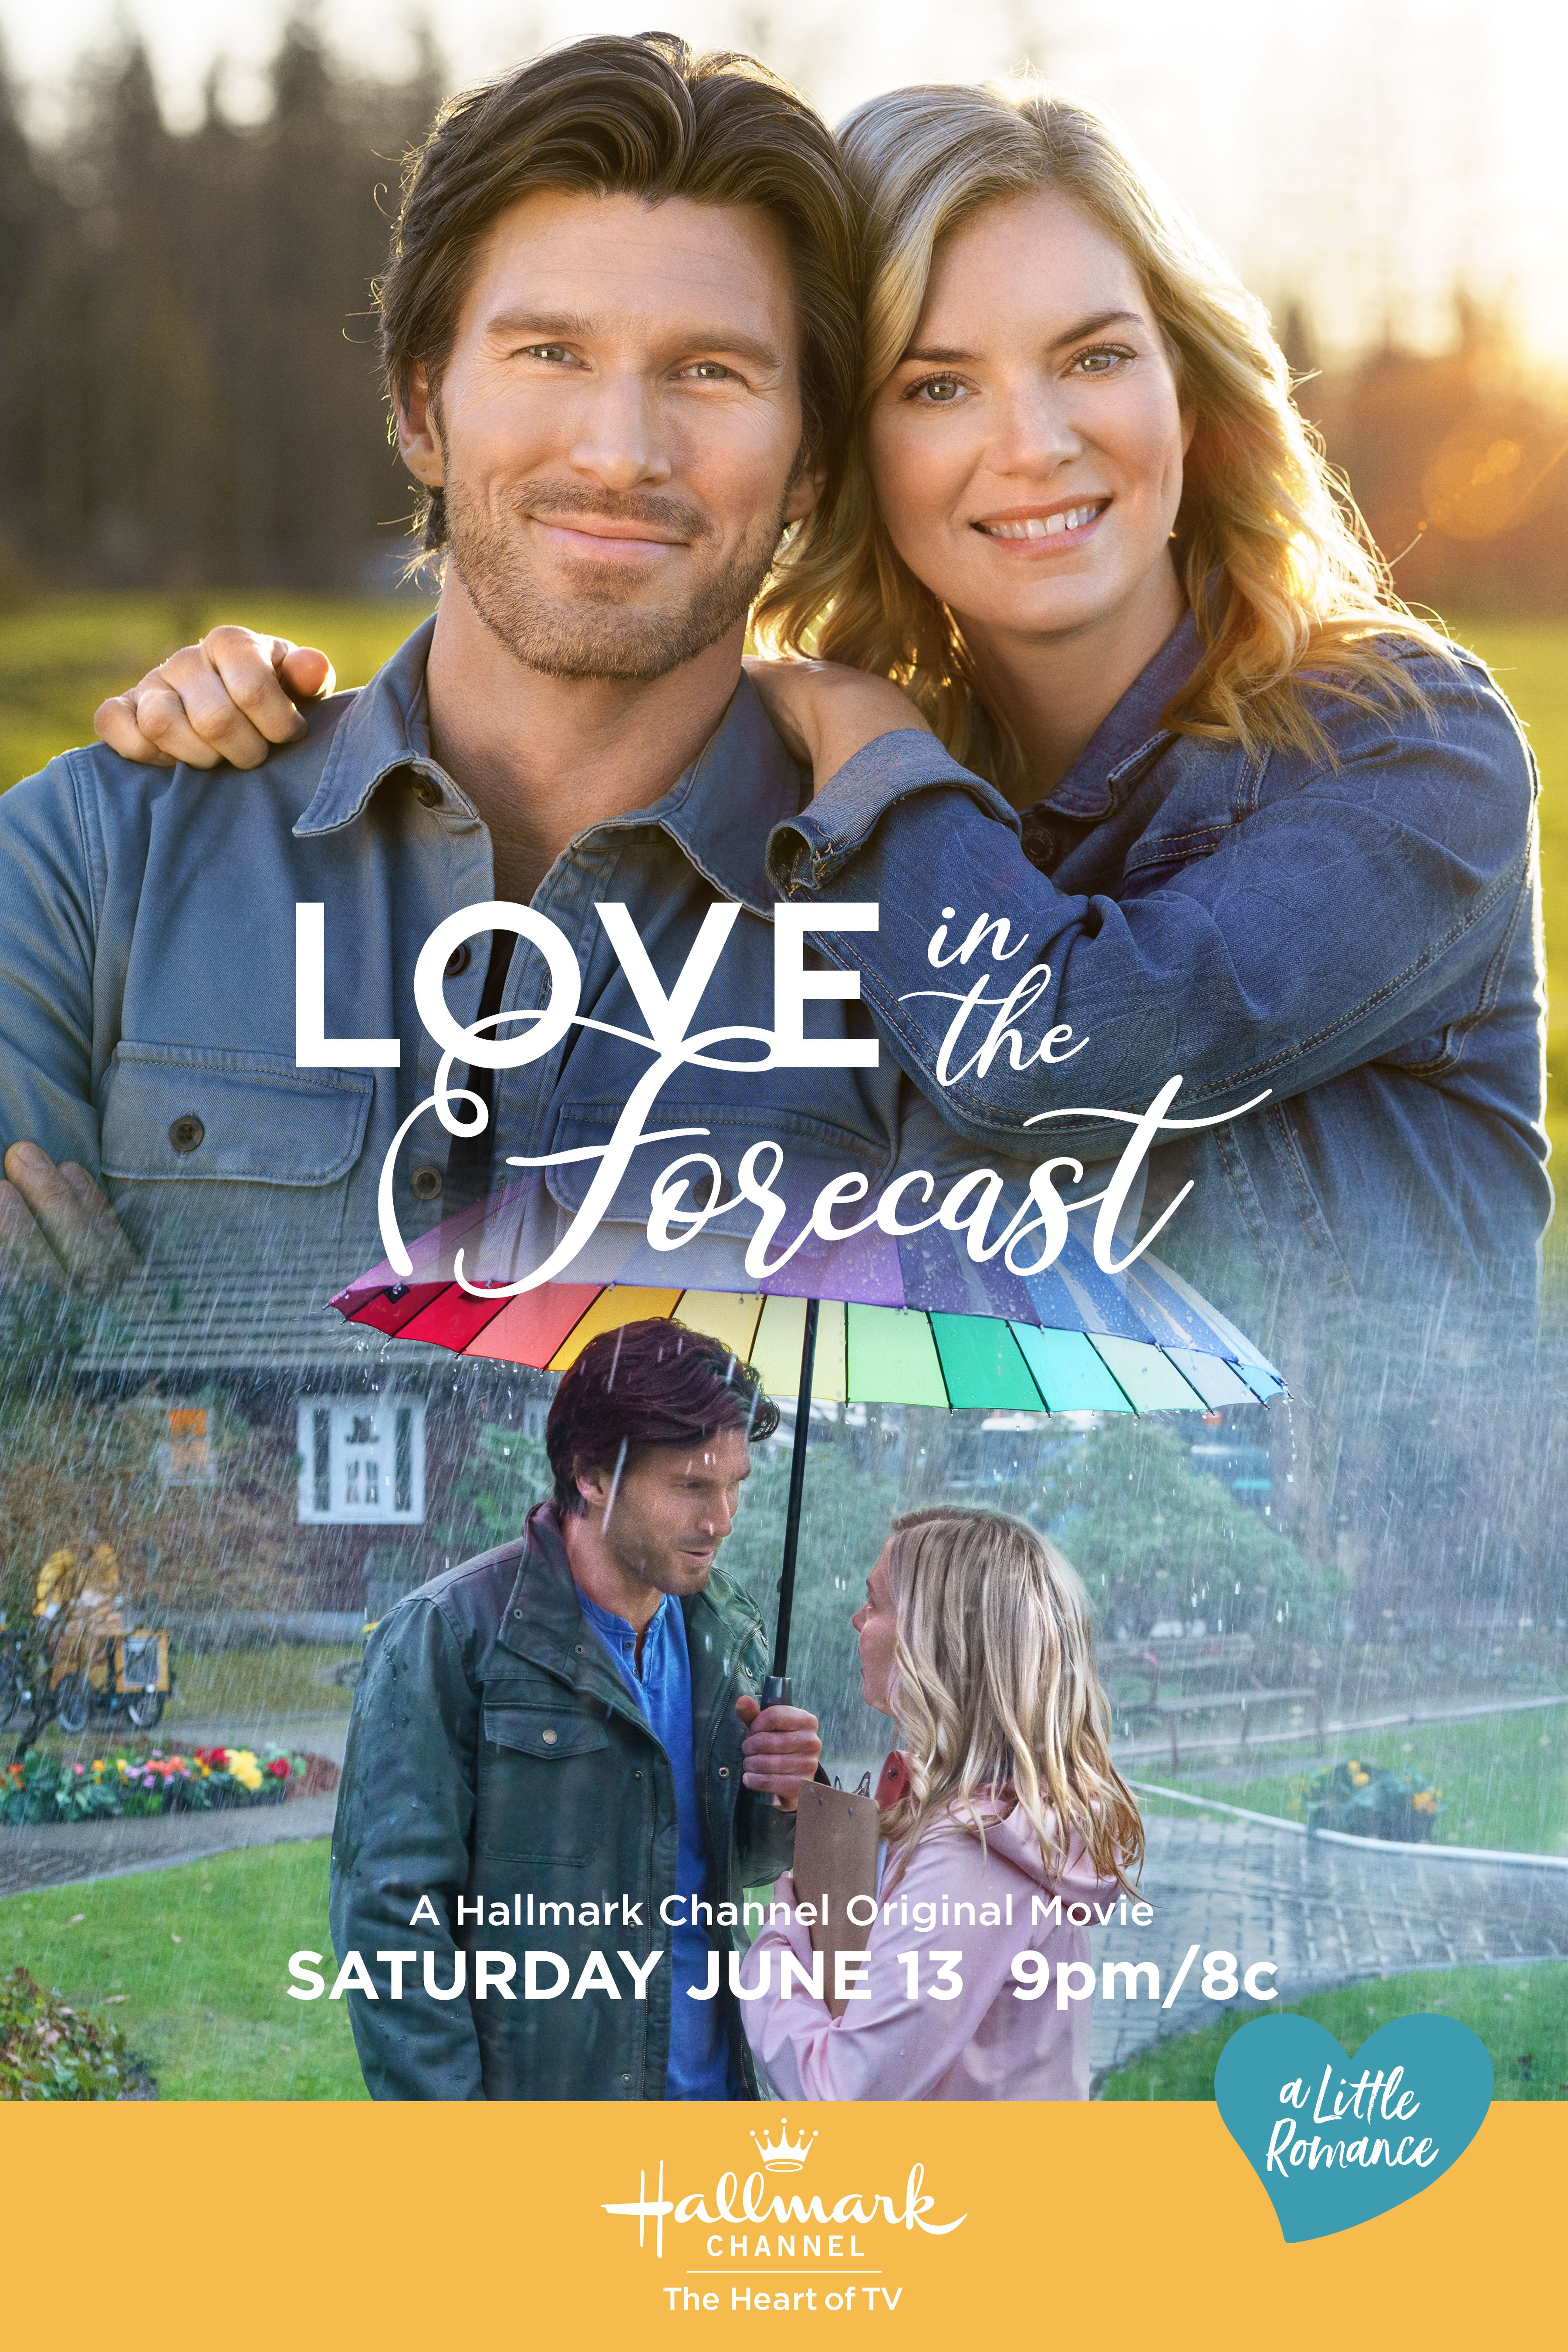 Love In The Forecast In 2020 Hallmark Channel Christmas Movies Hallmark Movie Channel Hallmark Movies Romance